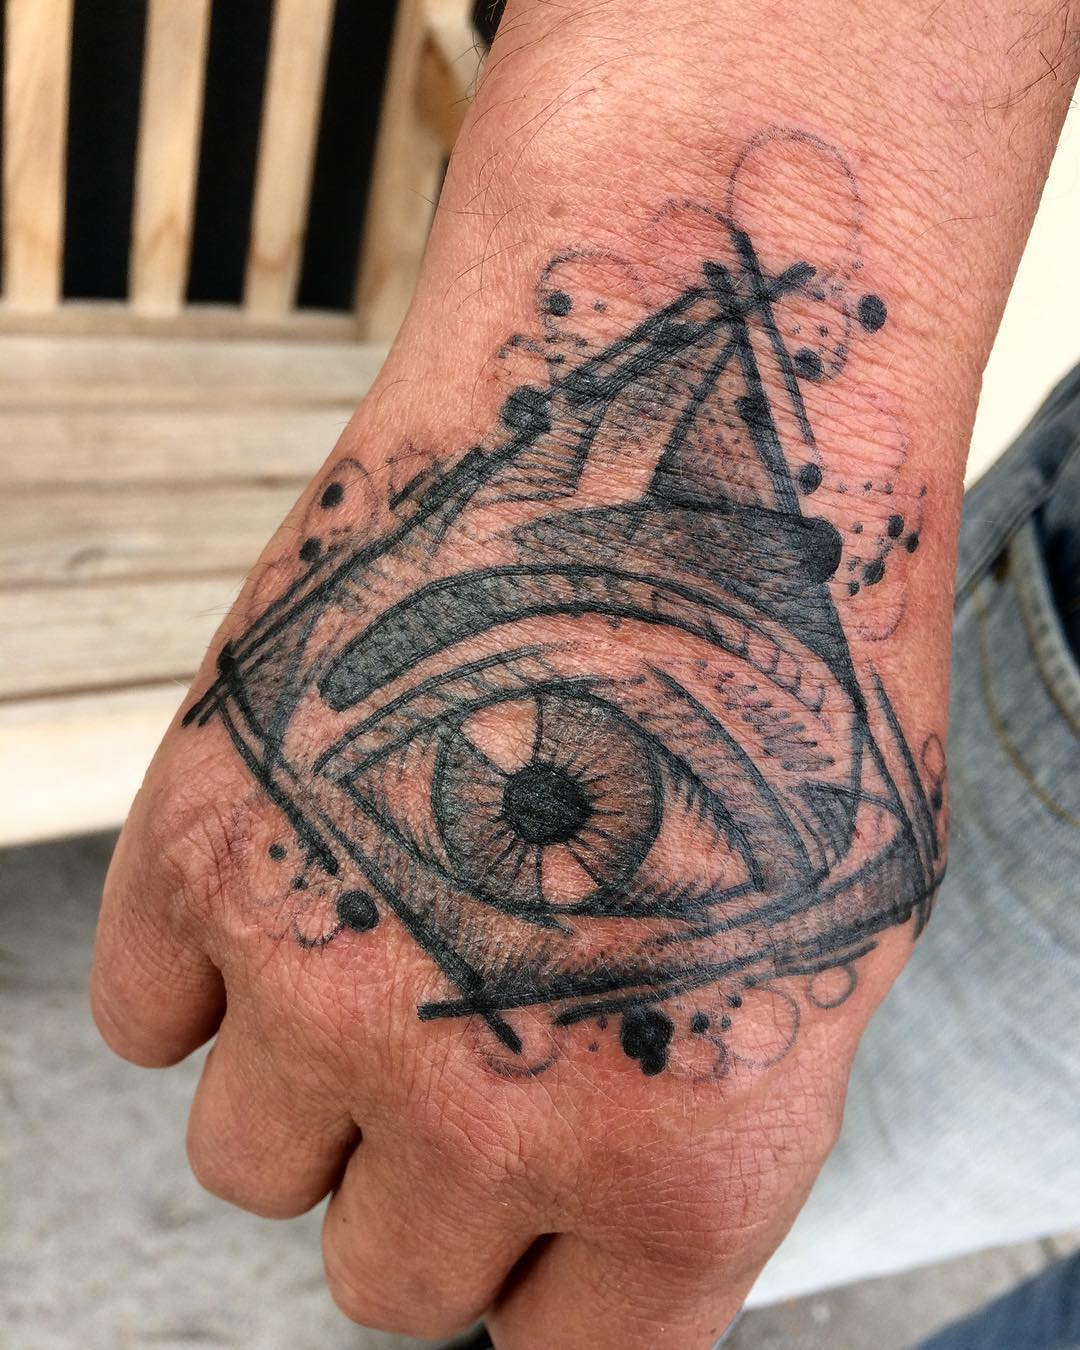 Illuminati eye tattoo from raphafons